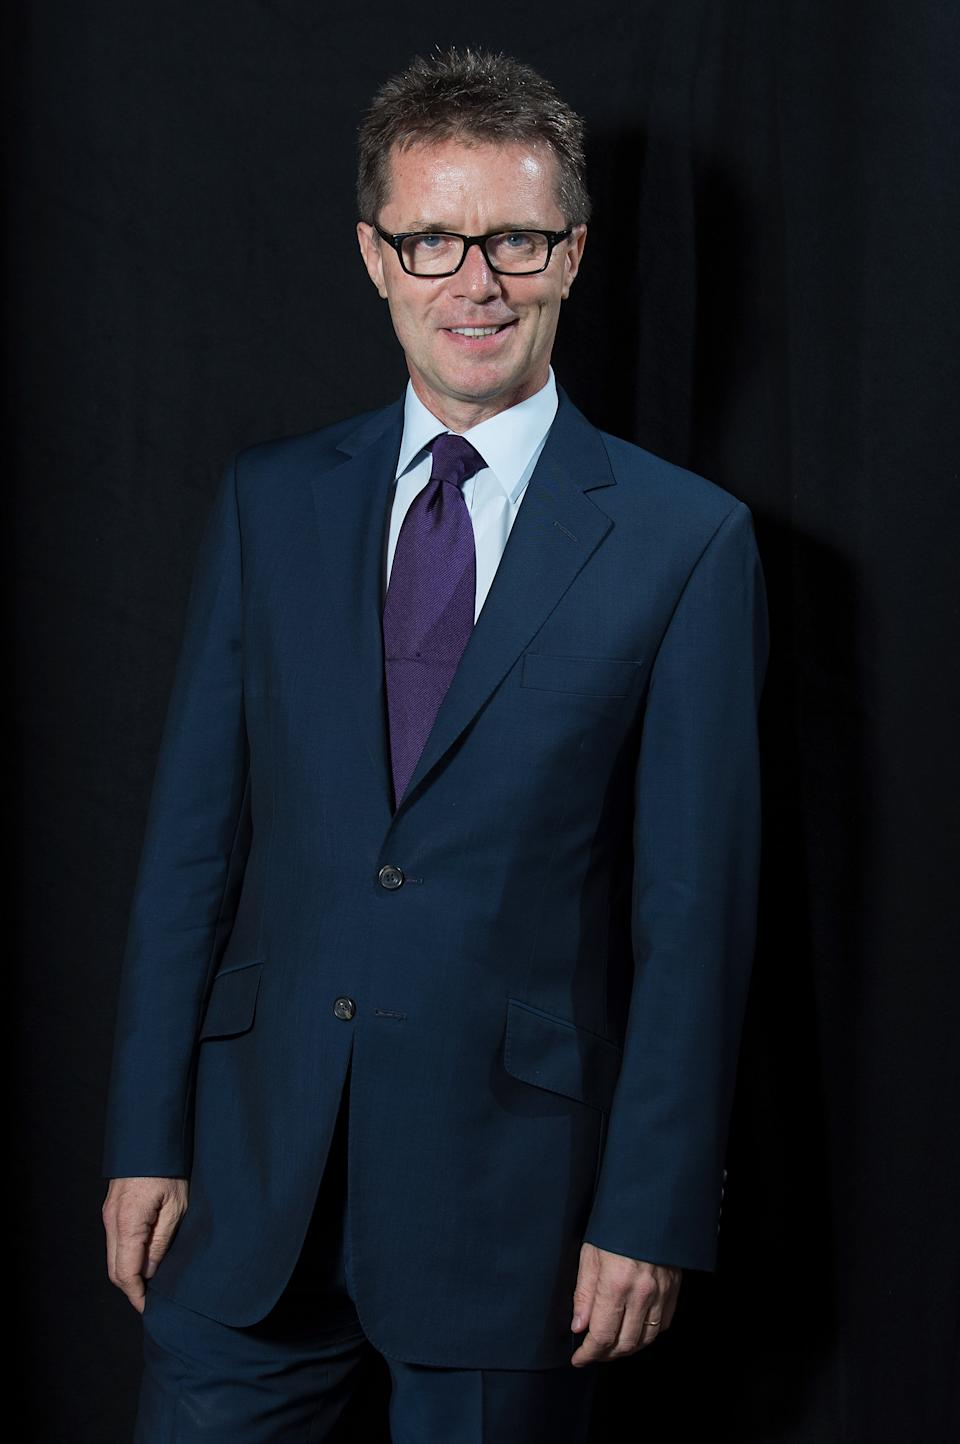 Nicky Campbell said he was in bed for two days. (Photo by Dave J Hogan/Dave J Hogan/Getty Images)